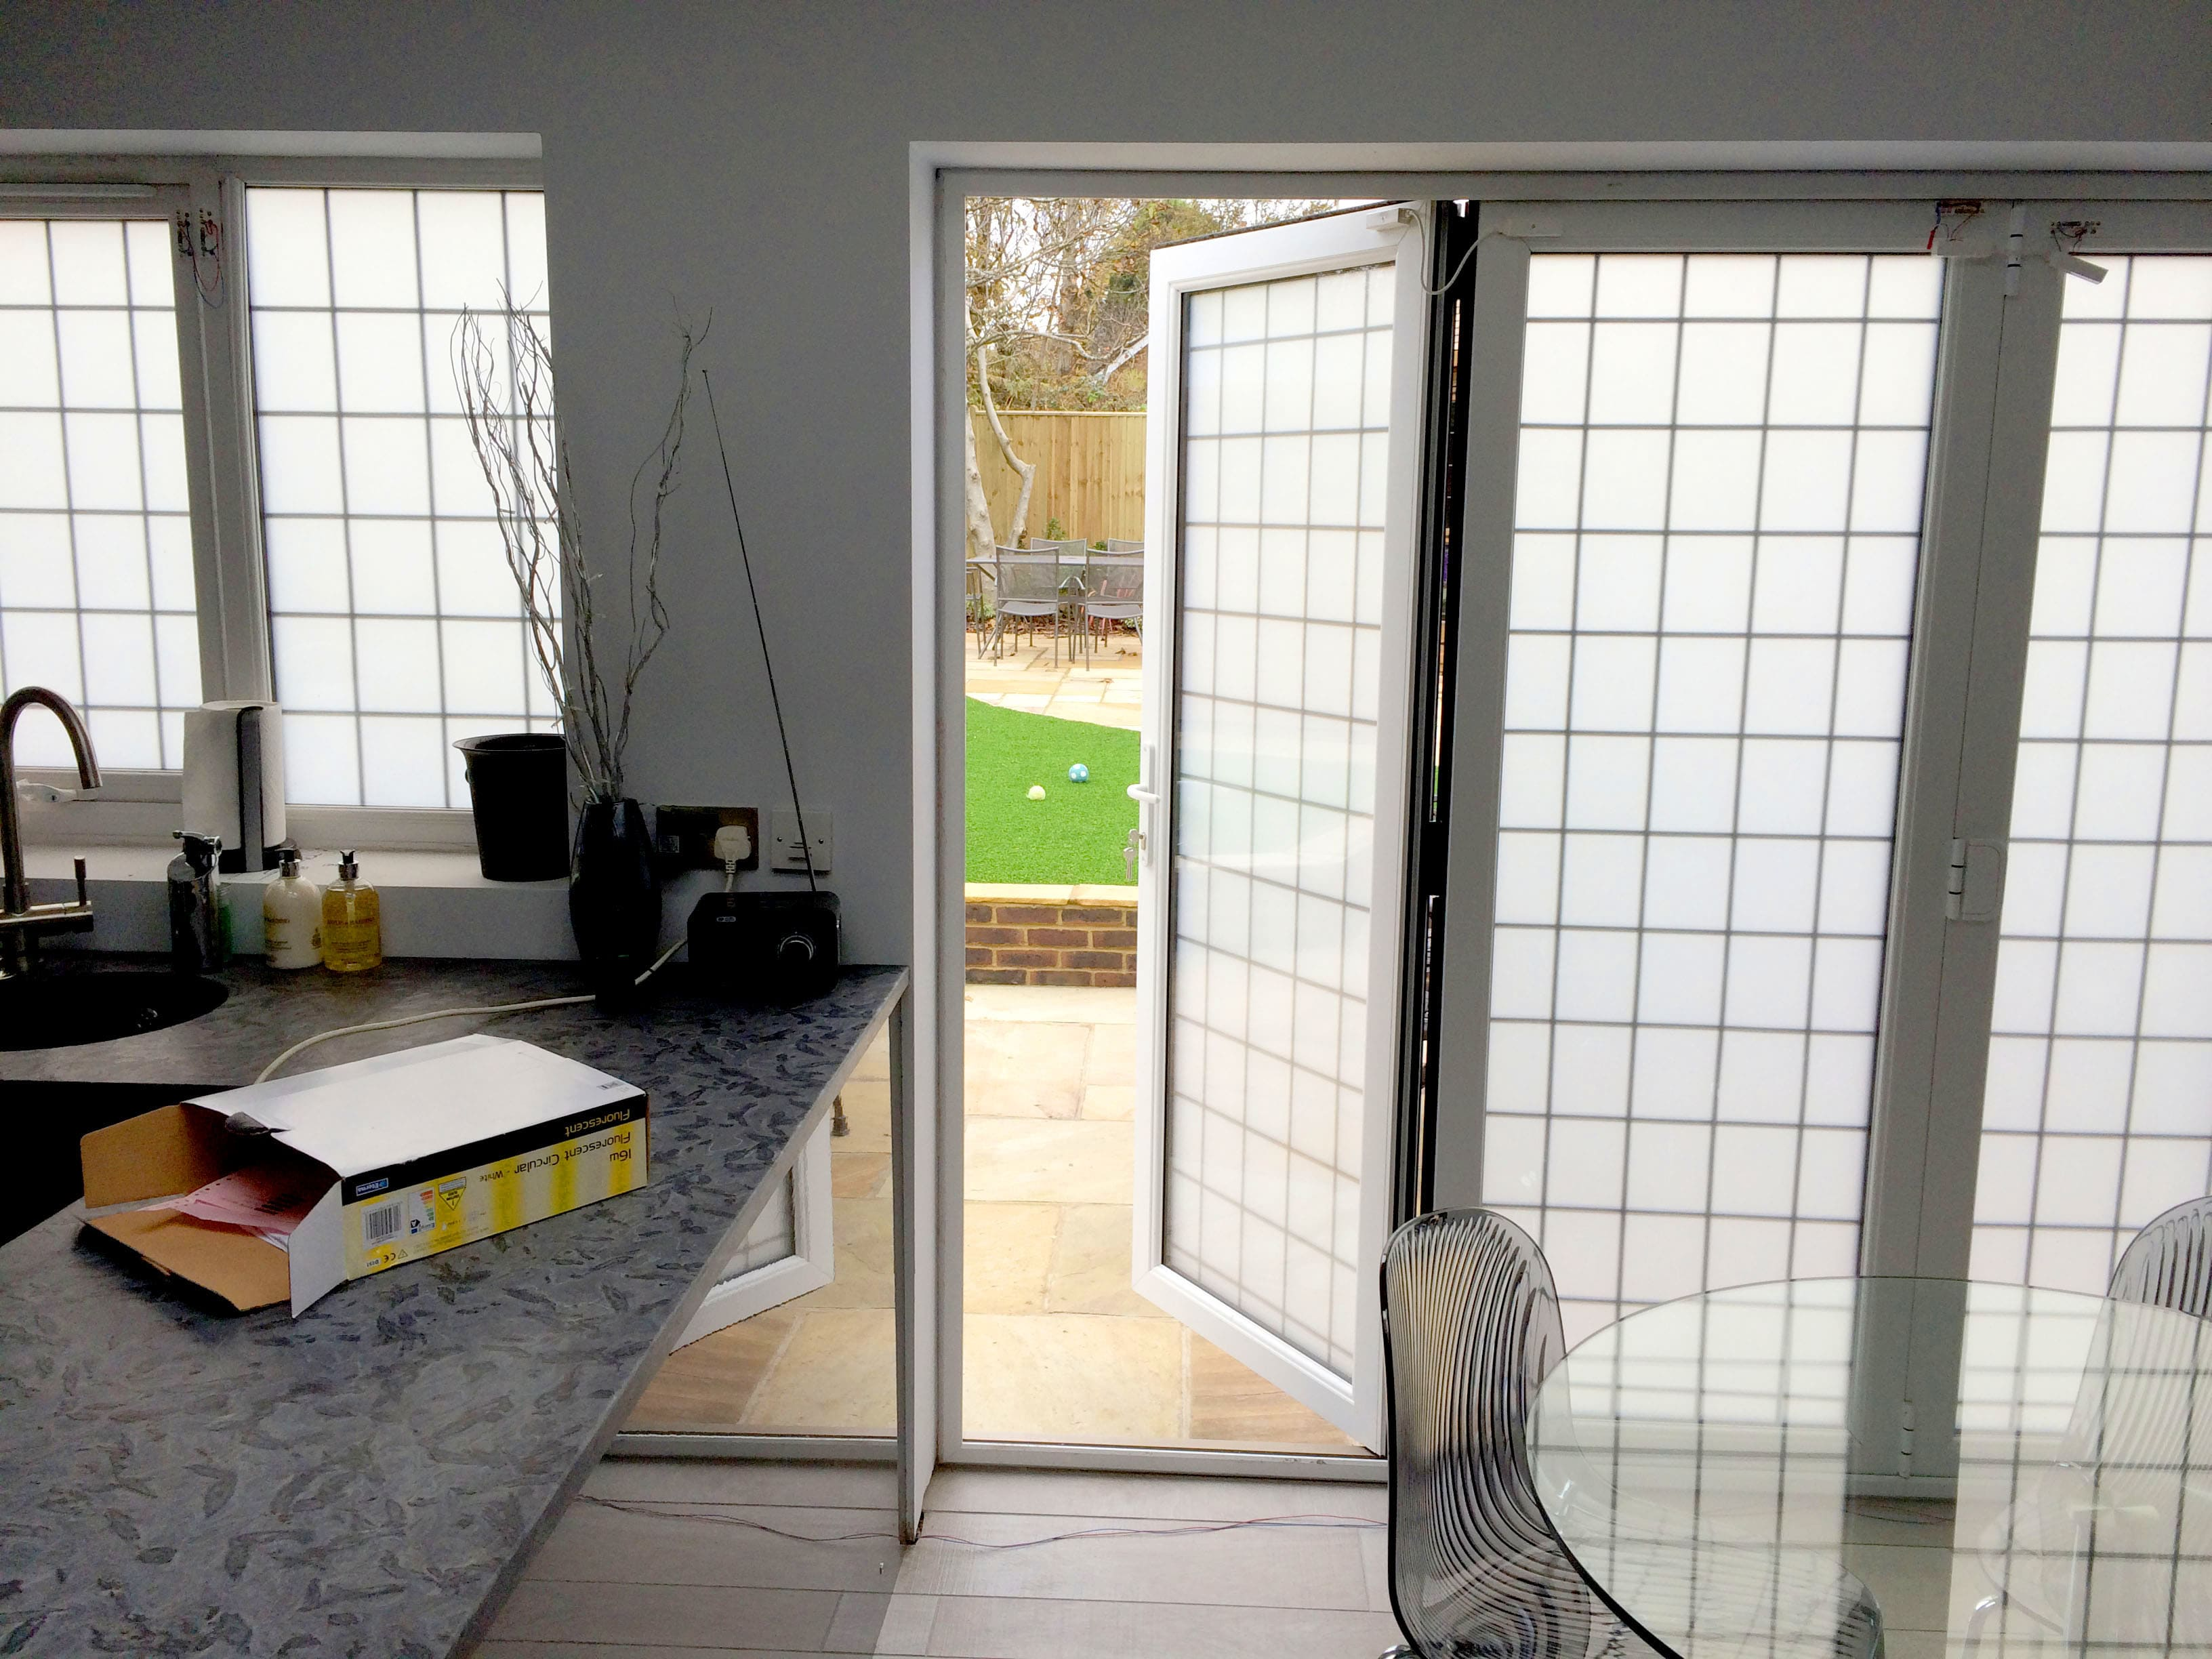 Double Glazed Smart Glass BiFold Doors in a kitchen switched to off